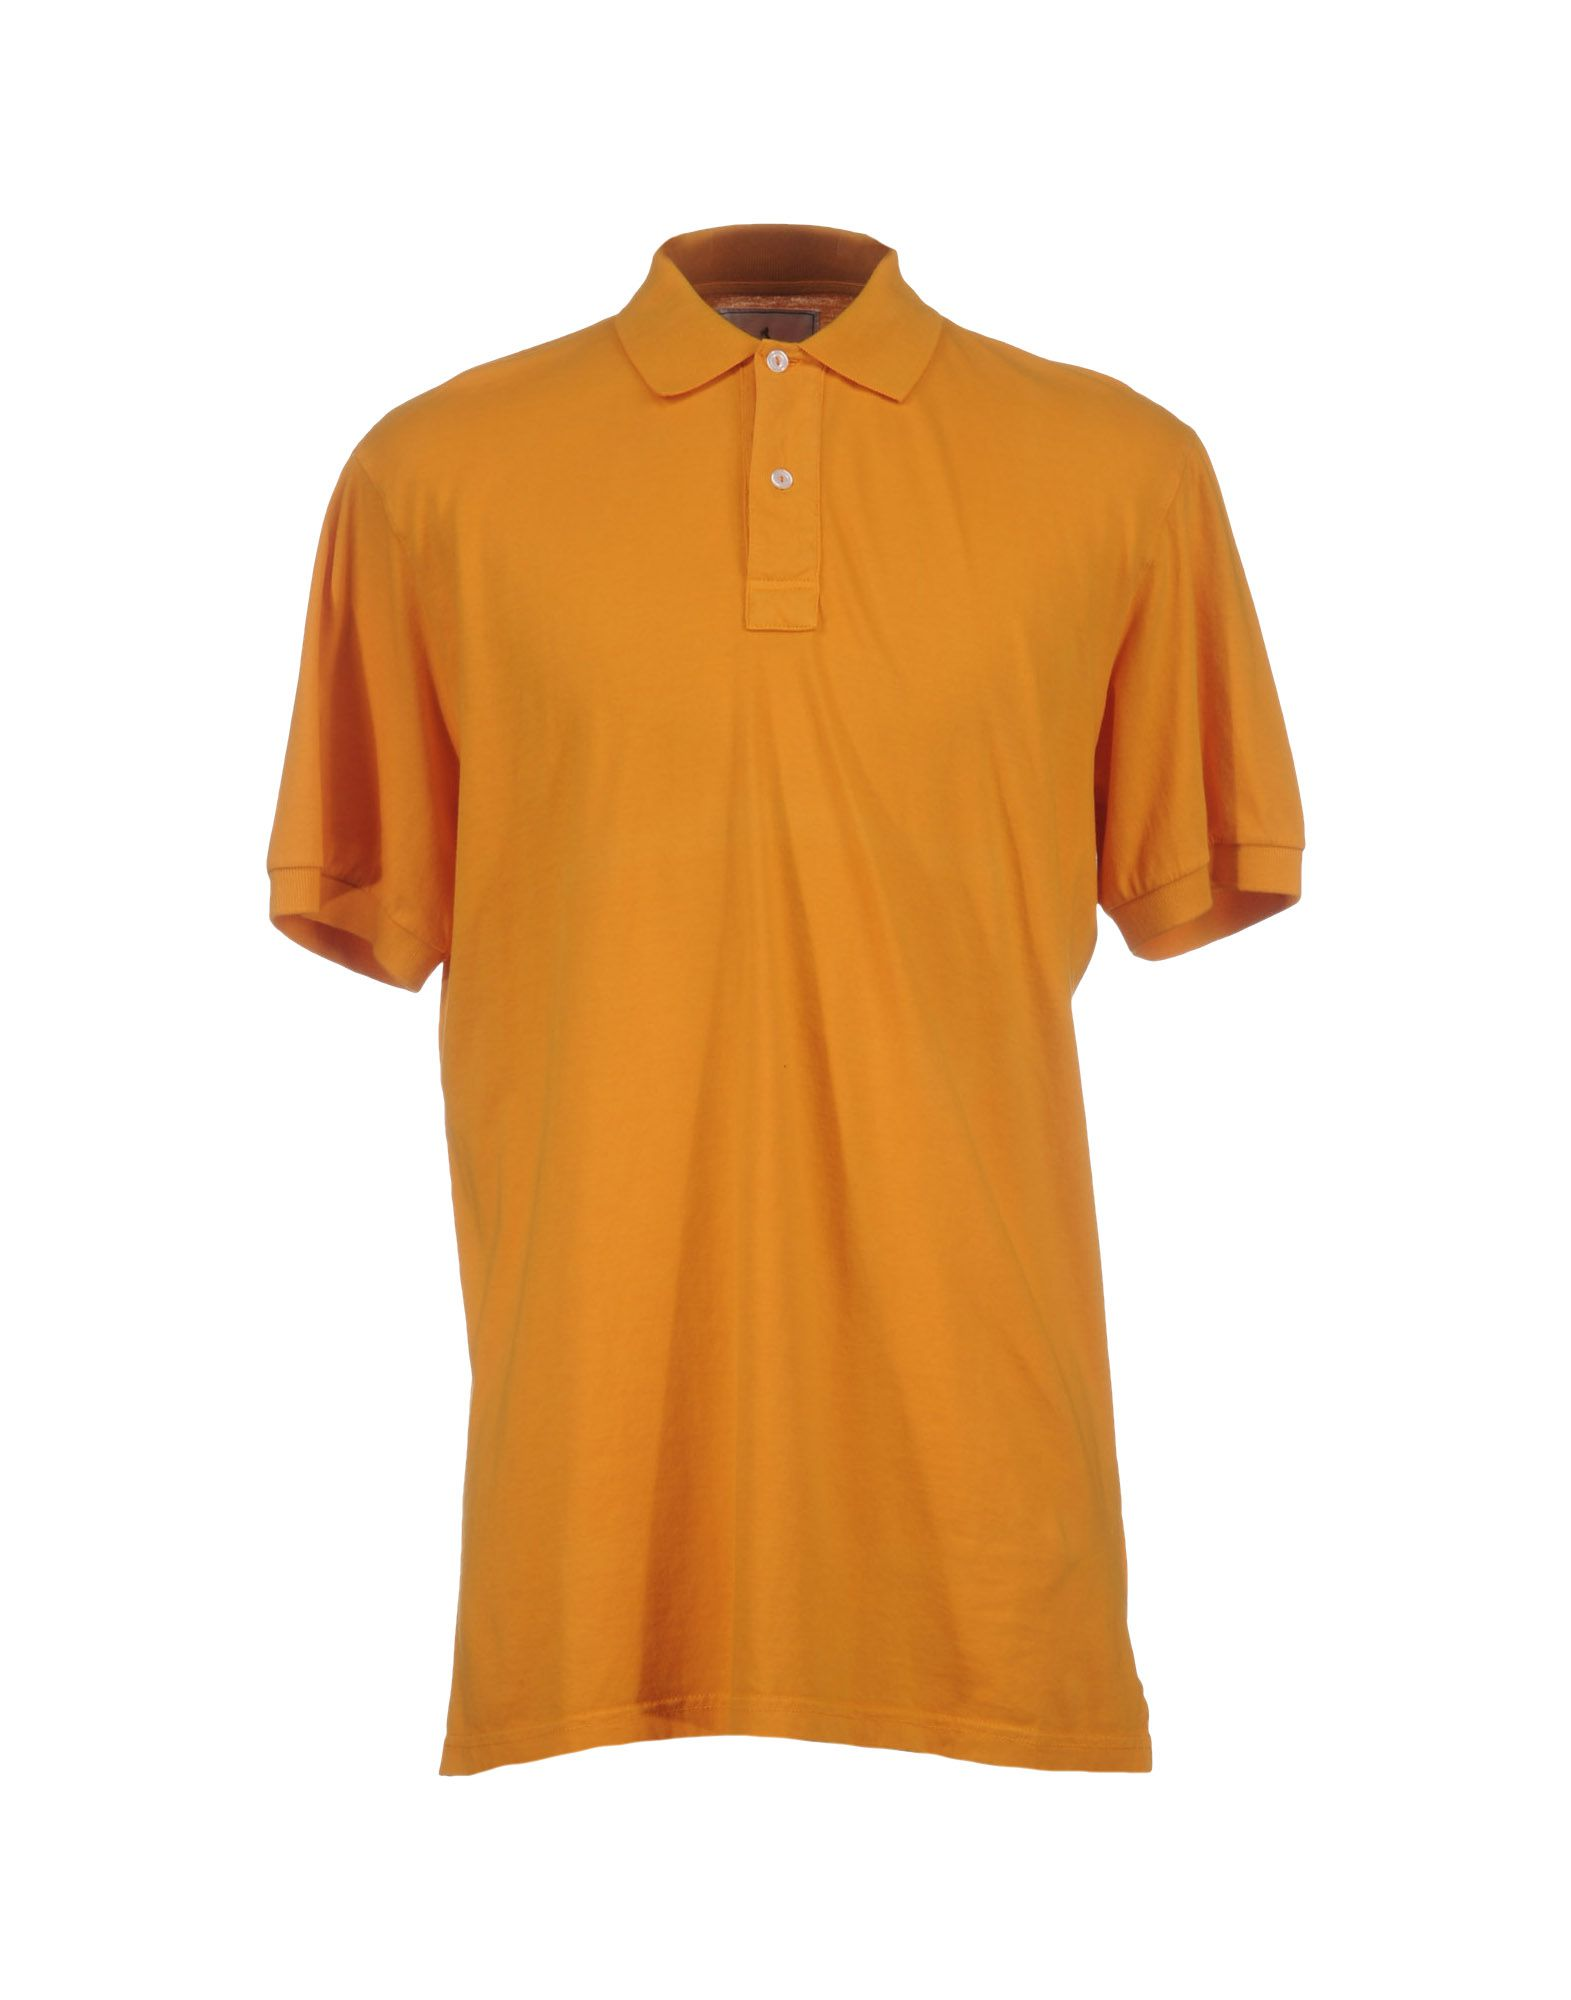 Men's Polo Shirts. A versatile piece in every man's closet, polos come in a range of styles, cuts, and fabrics. Dress one up with pants or complete a casual look with nirtsnom.tk our classic look in a range of solid colors, or choose Nautica heritage styles with bold stripes and color blocks.